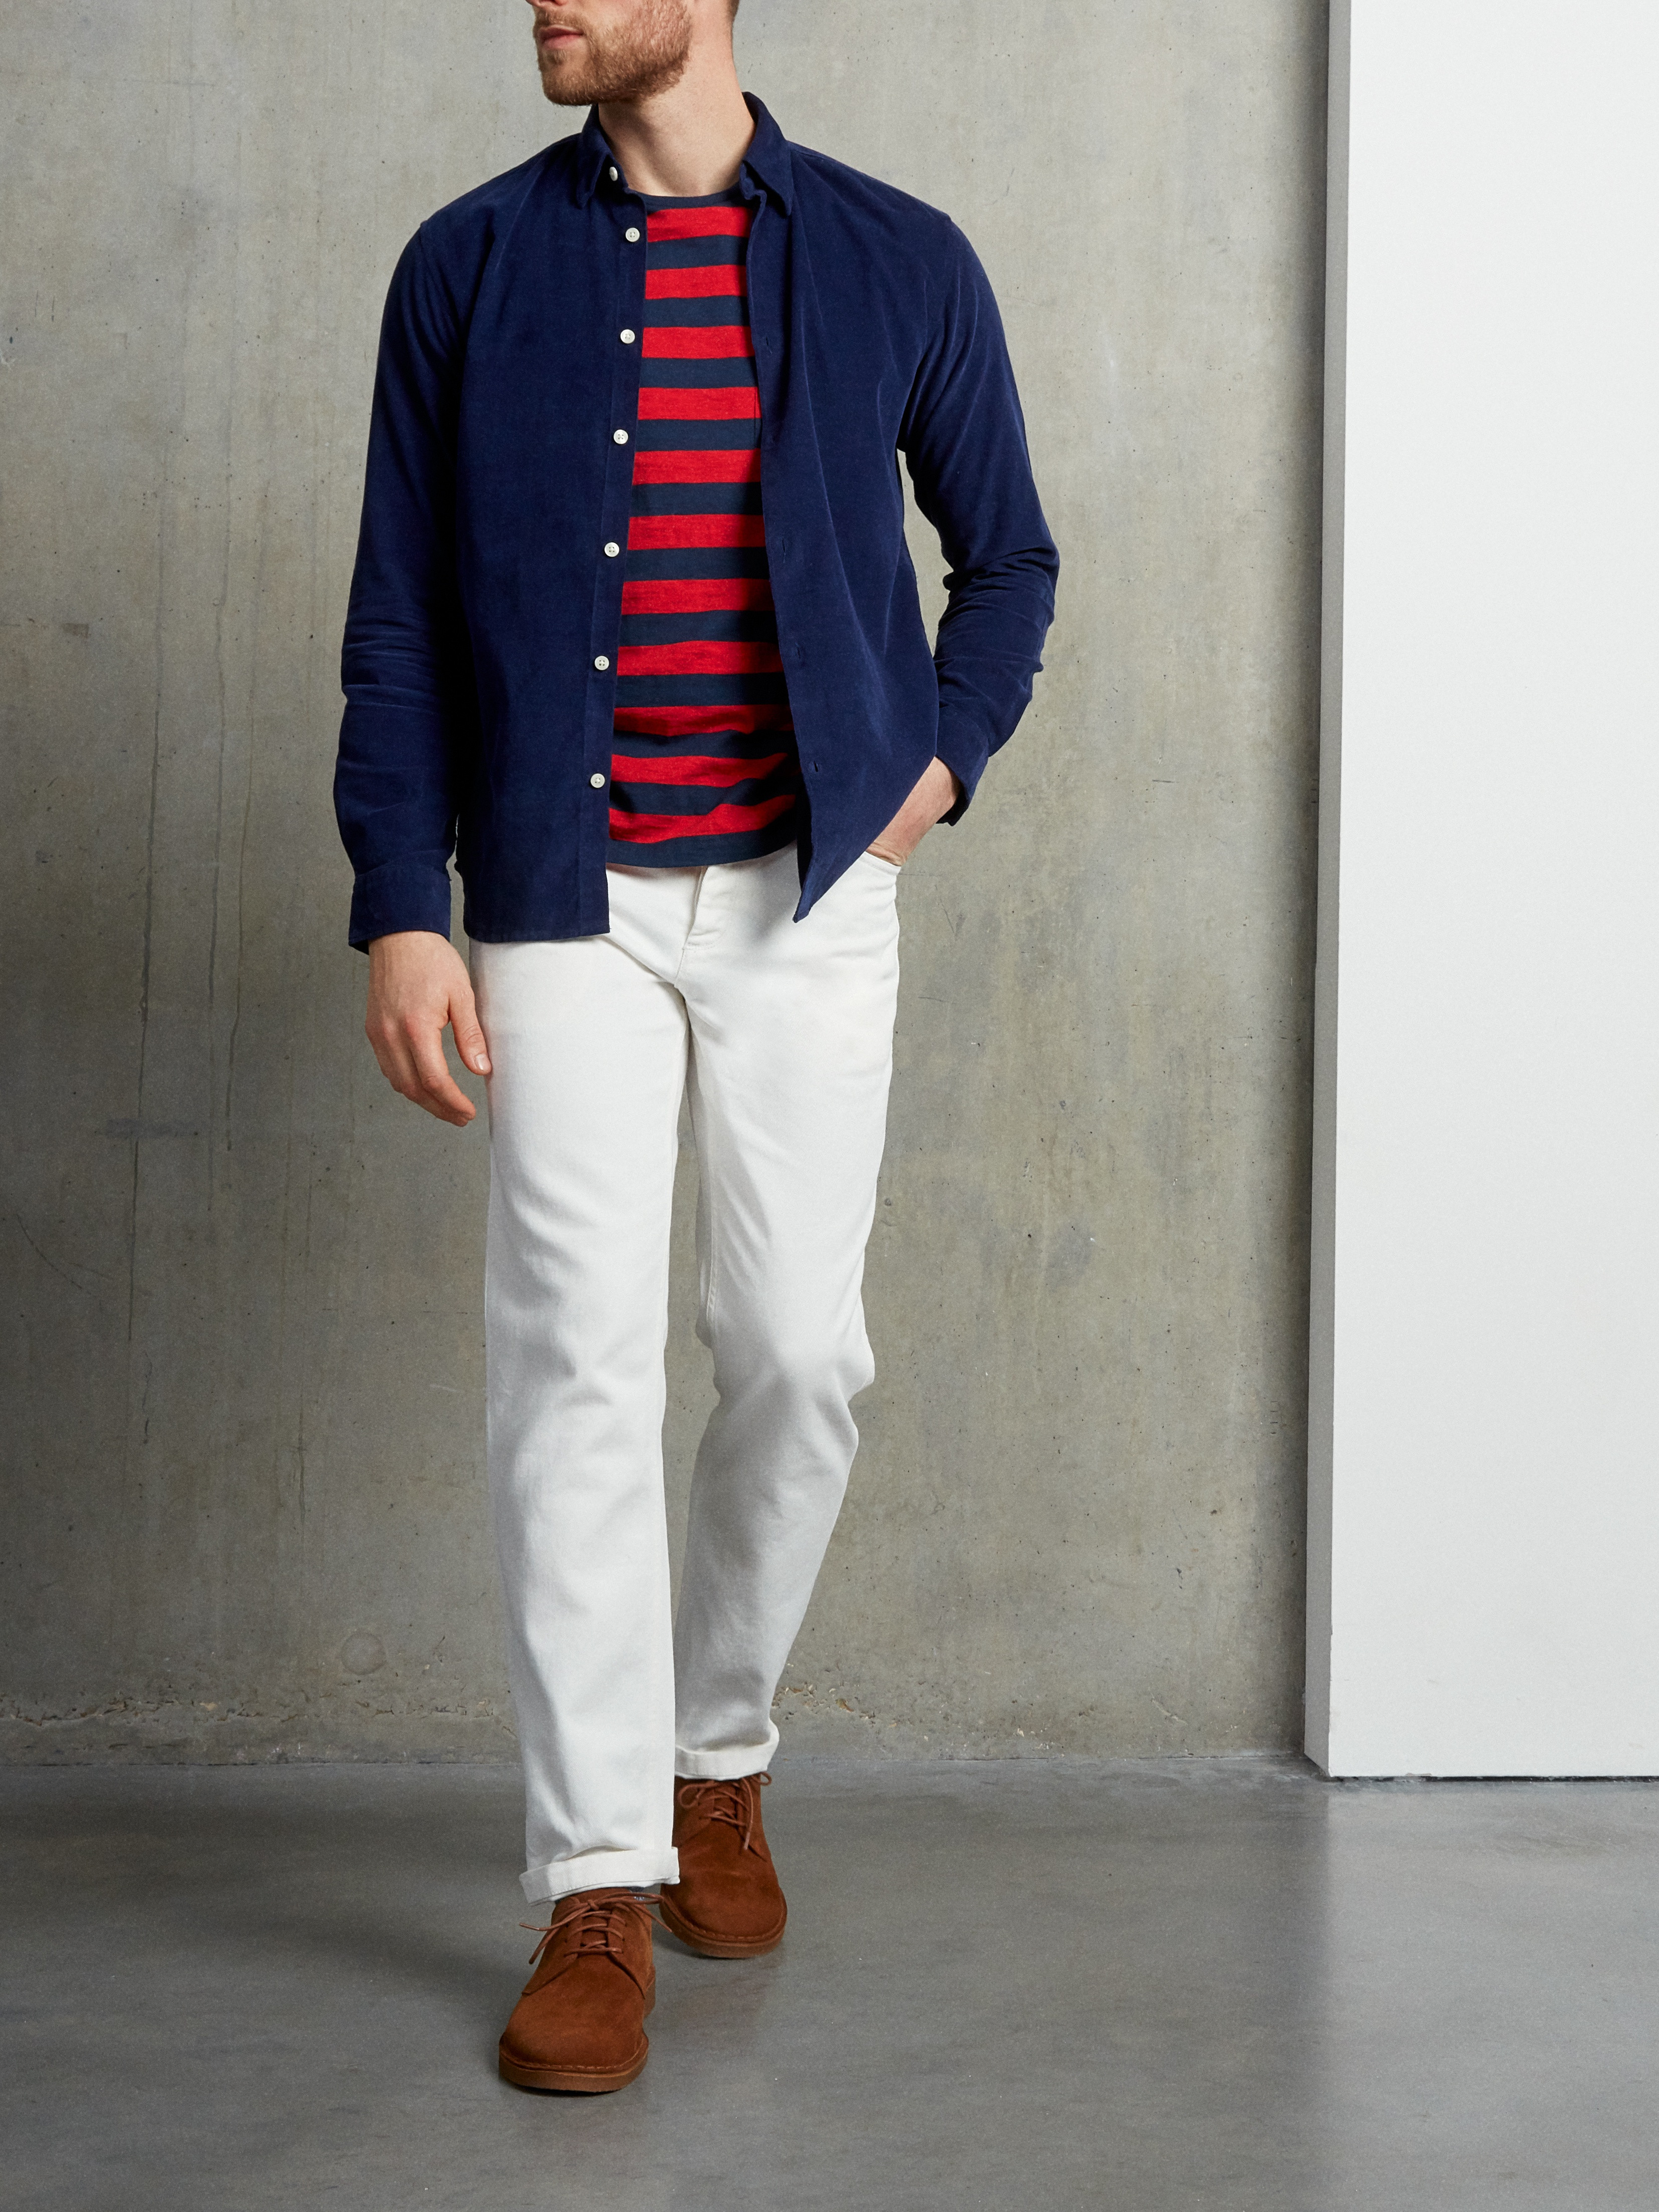 Men's outfit idea for 2021 with navy casual shirt, striped crew neck t-shirt, suede shoes / desert shoes. Suitable for spring, summer and fall.